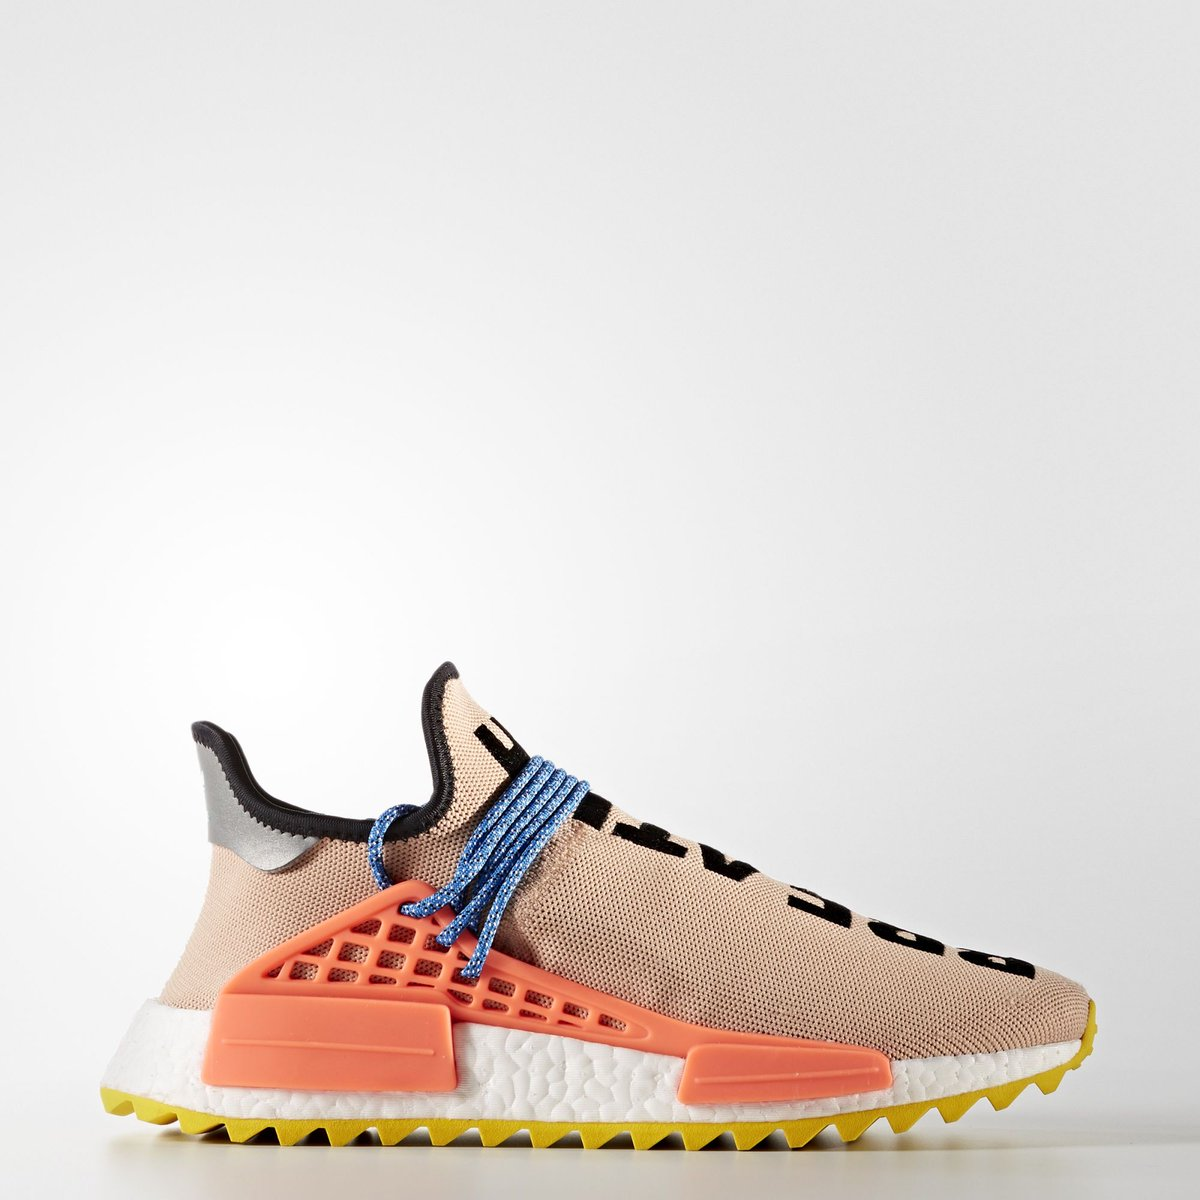 638734f6e Pharrell adidas NMD Hu Trail Multicolor AC7360